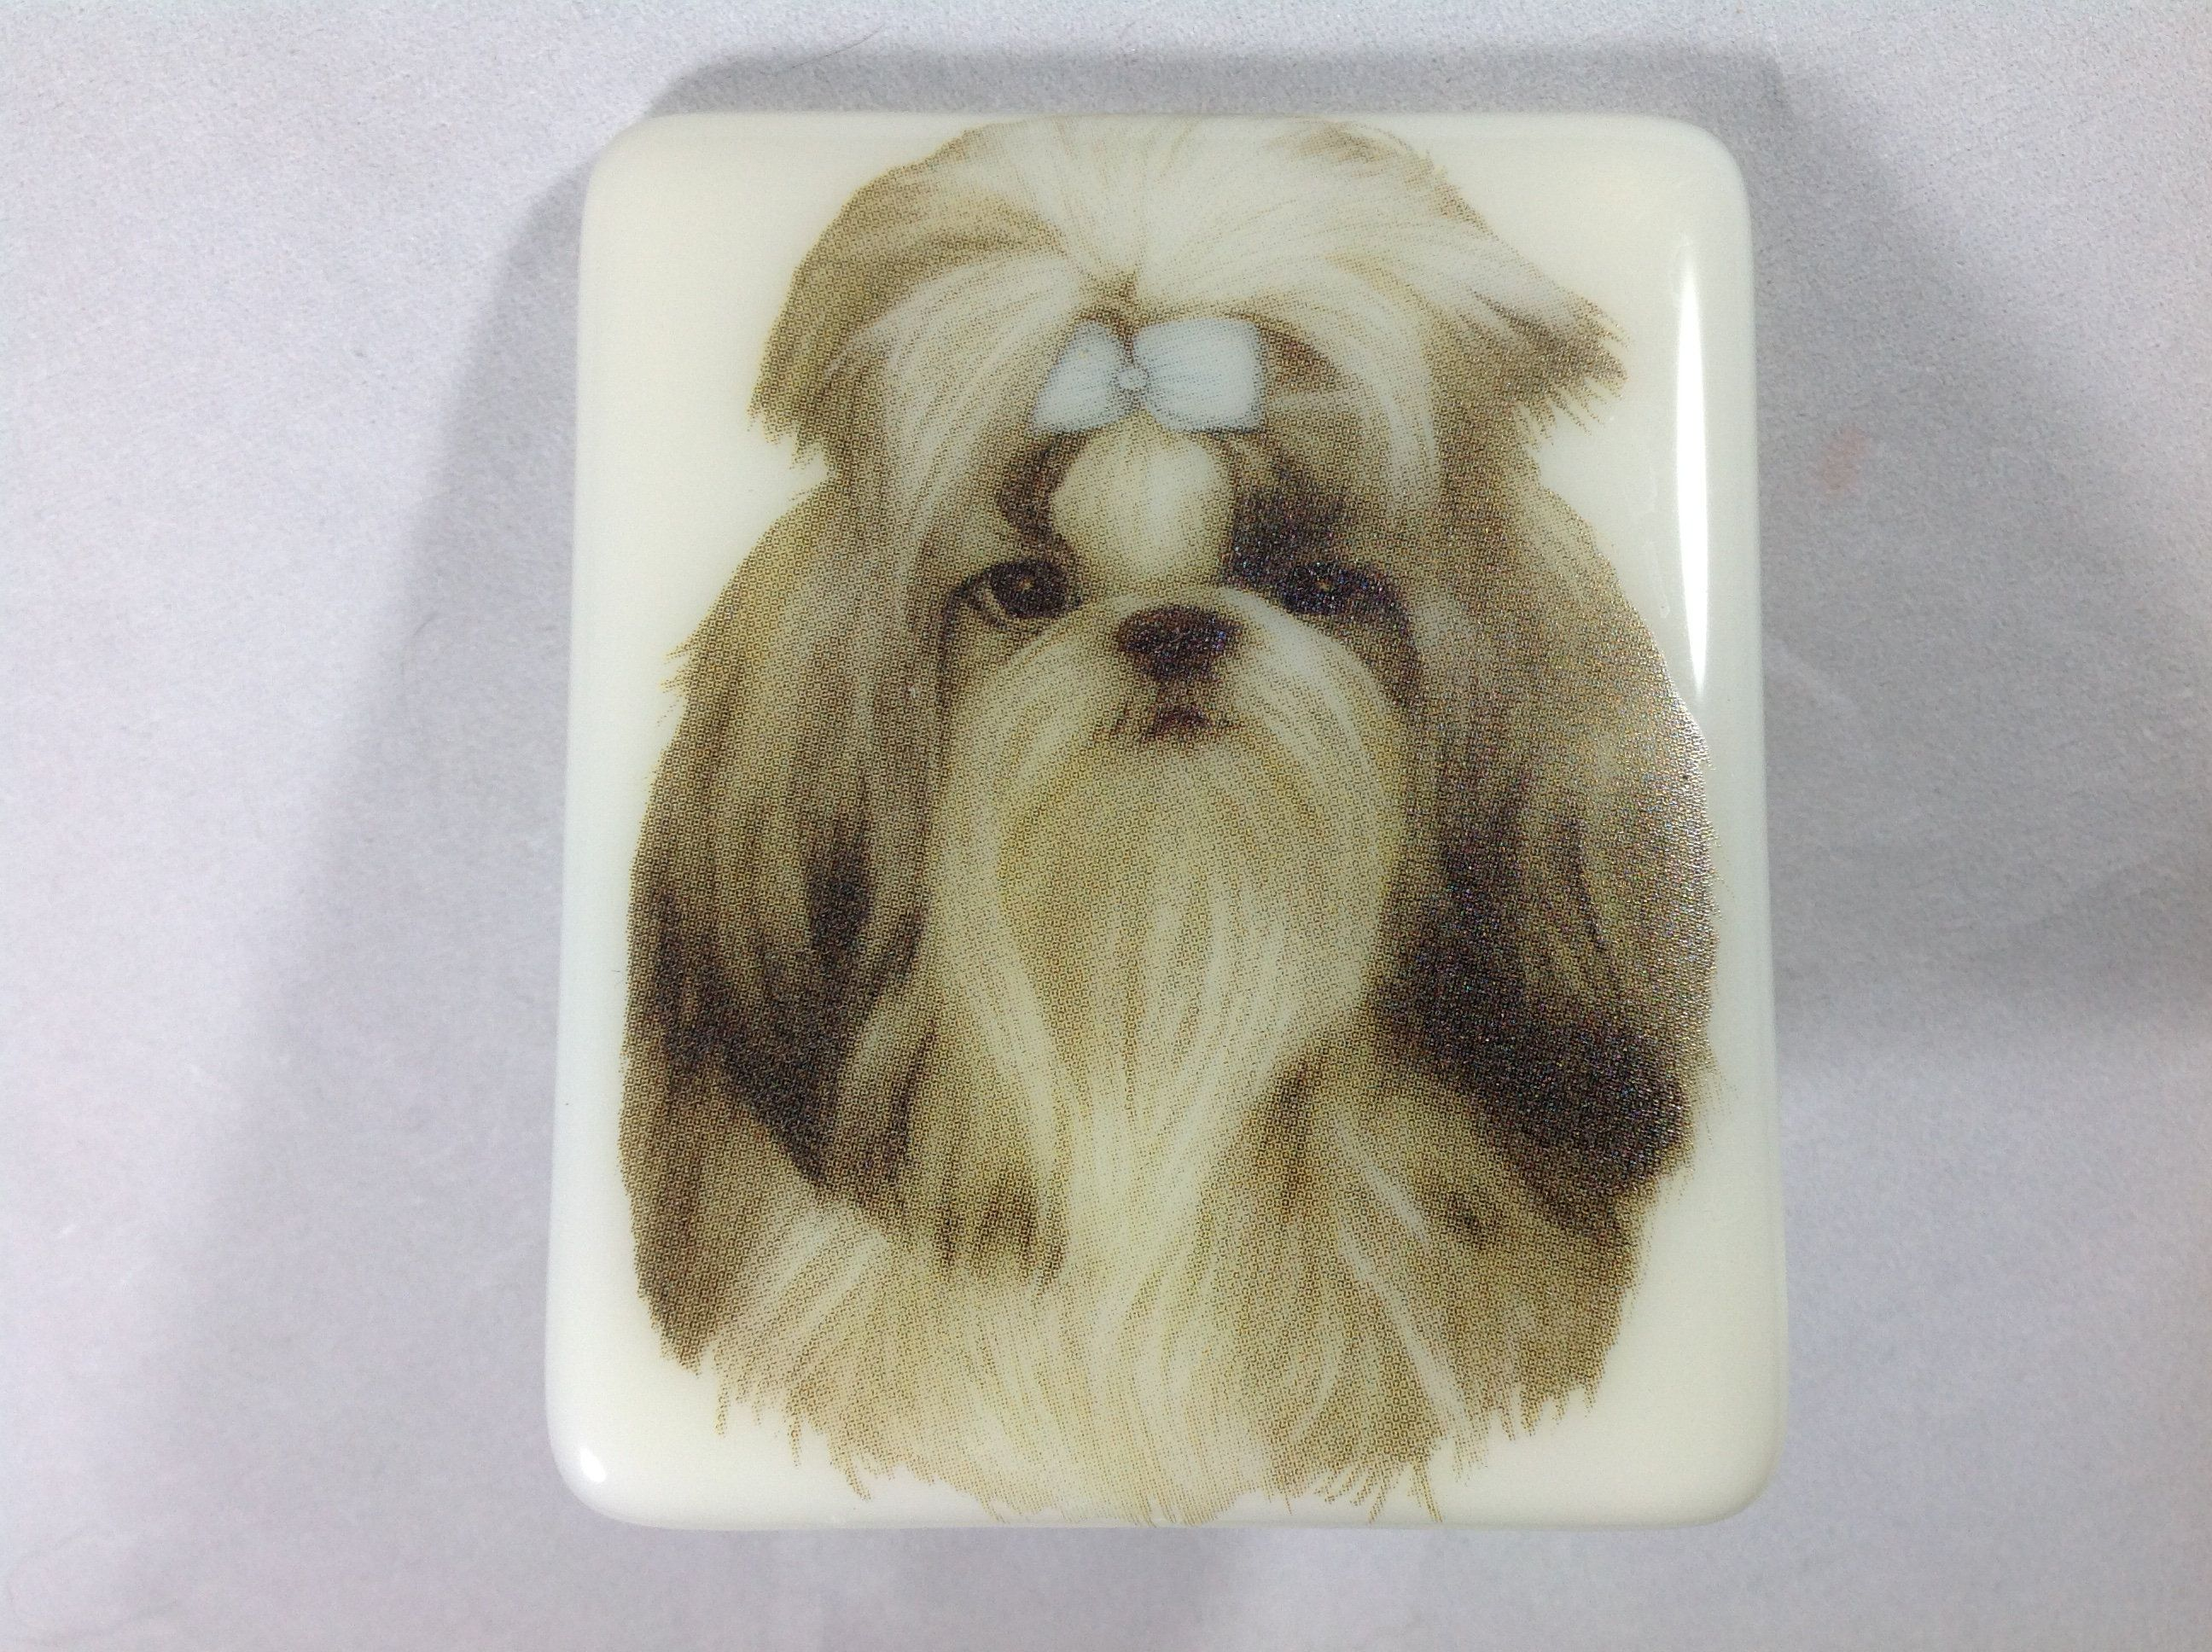 Shih Tzu Dog Wall Plug in Night Light in Fused Glass | Etsy